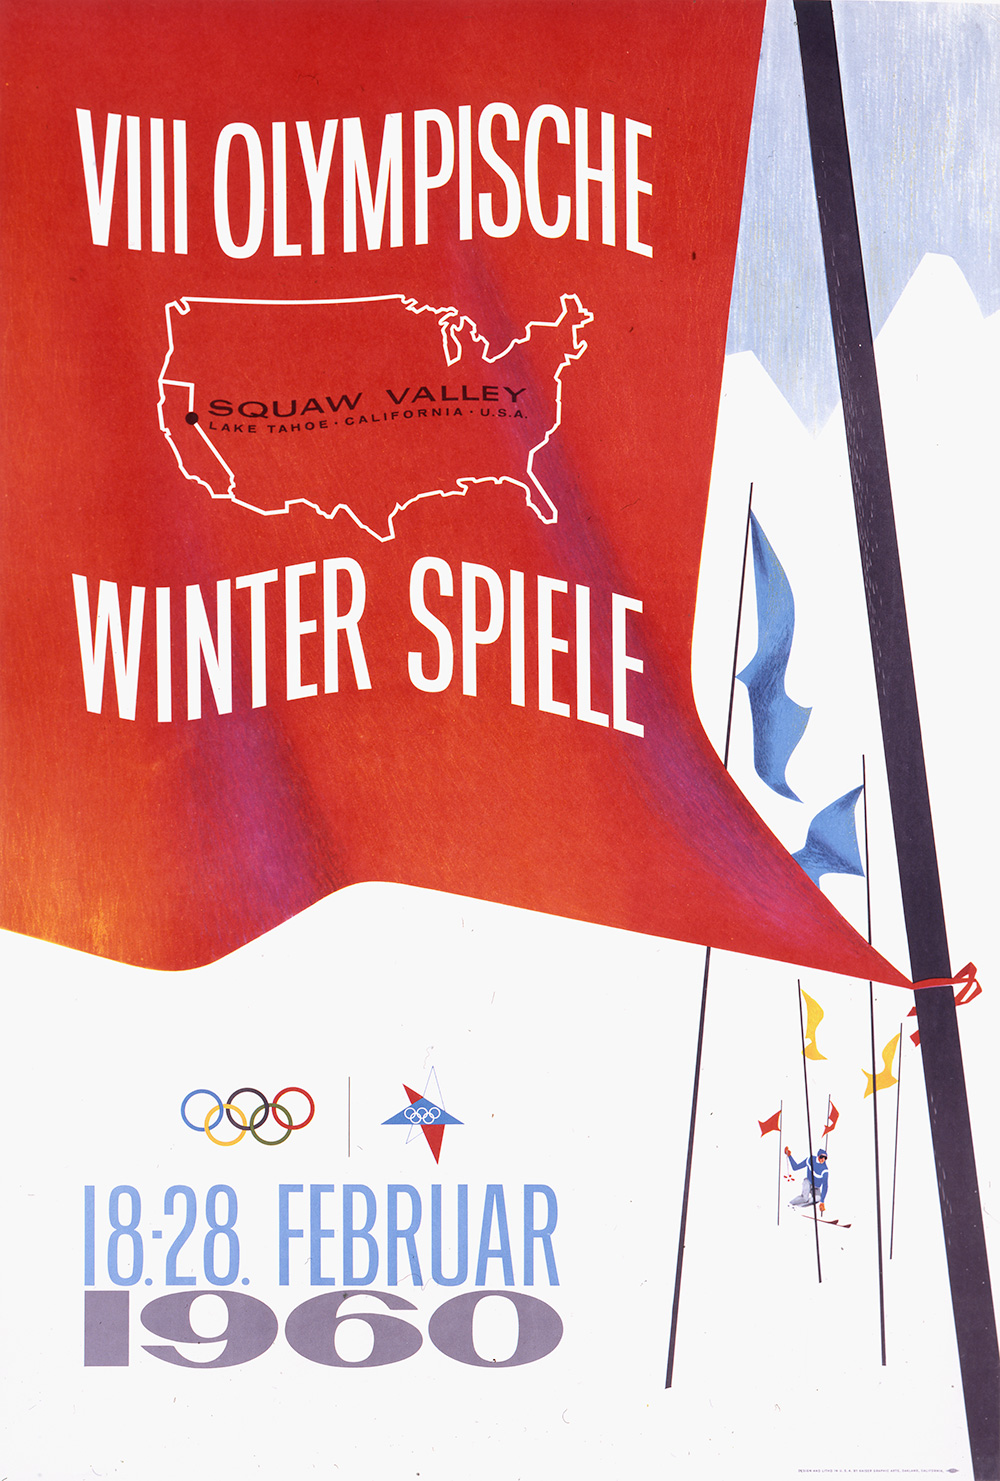 Squaw Valley/Olympique D'Hiver 1960.